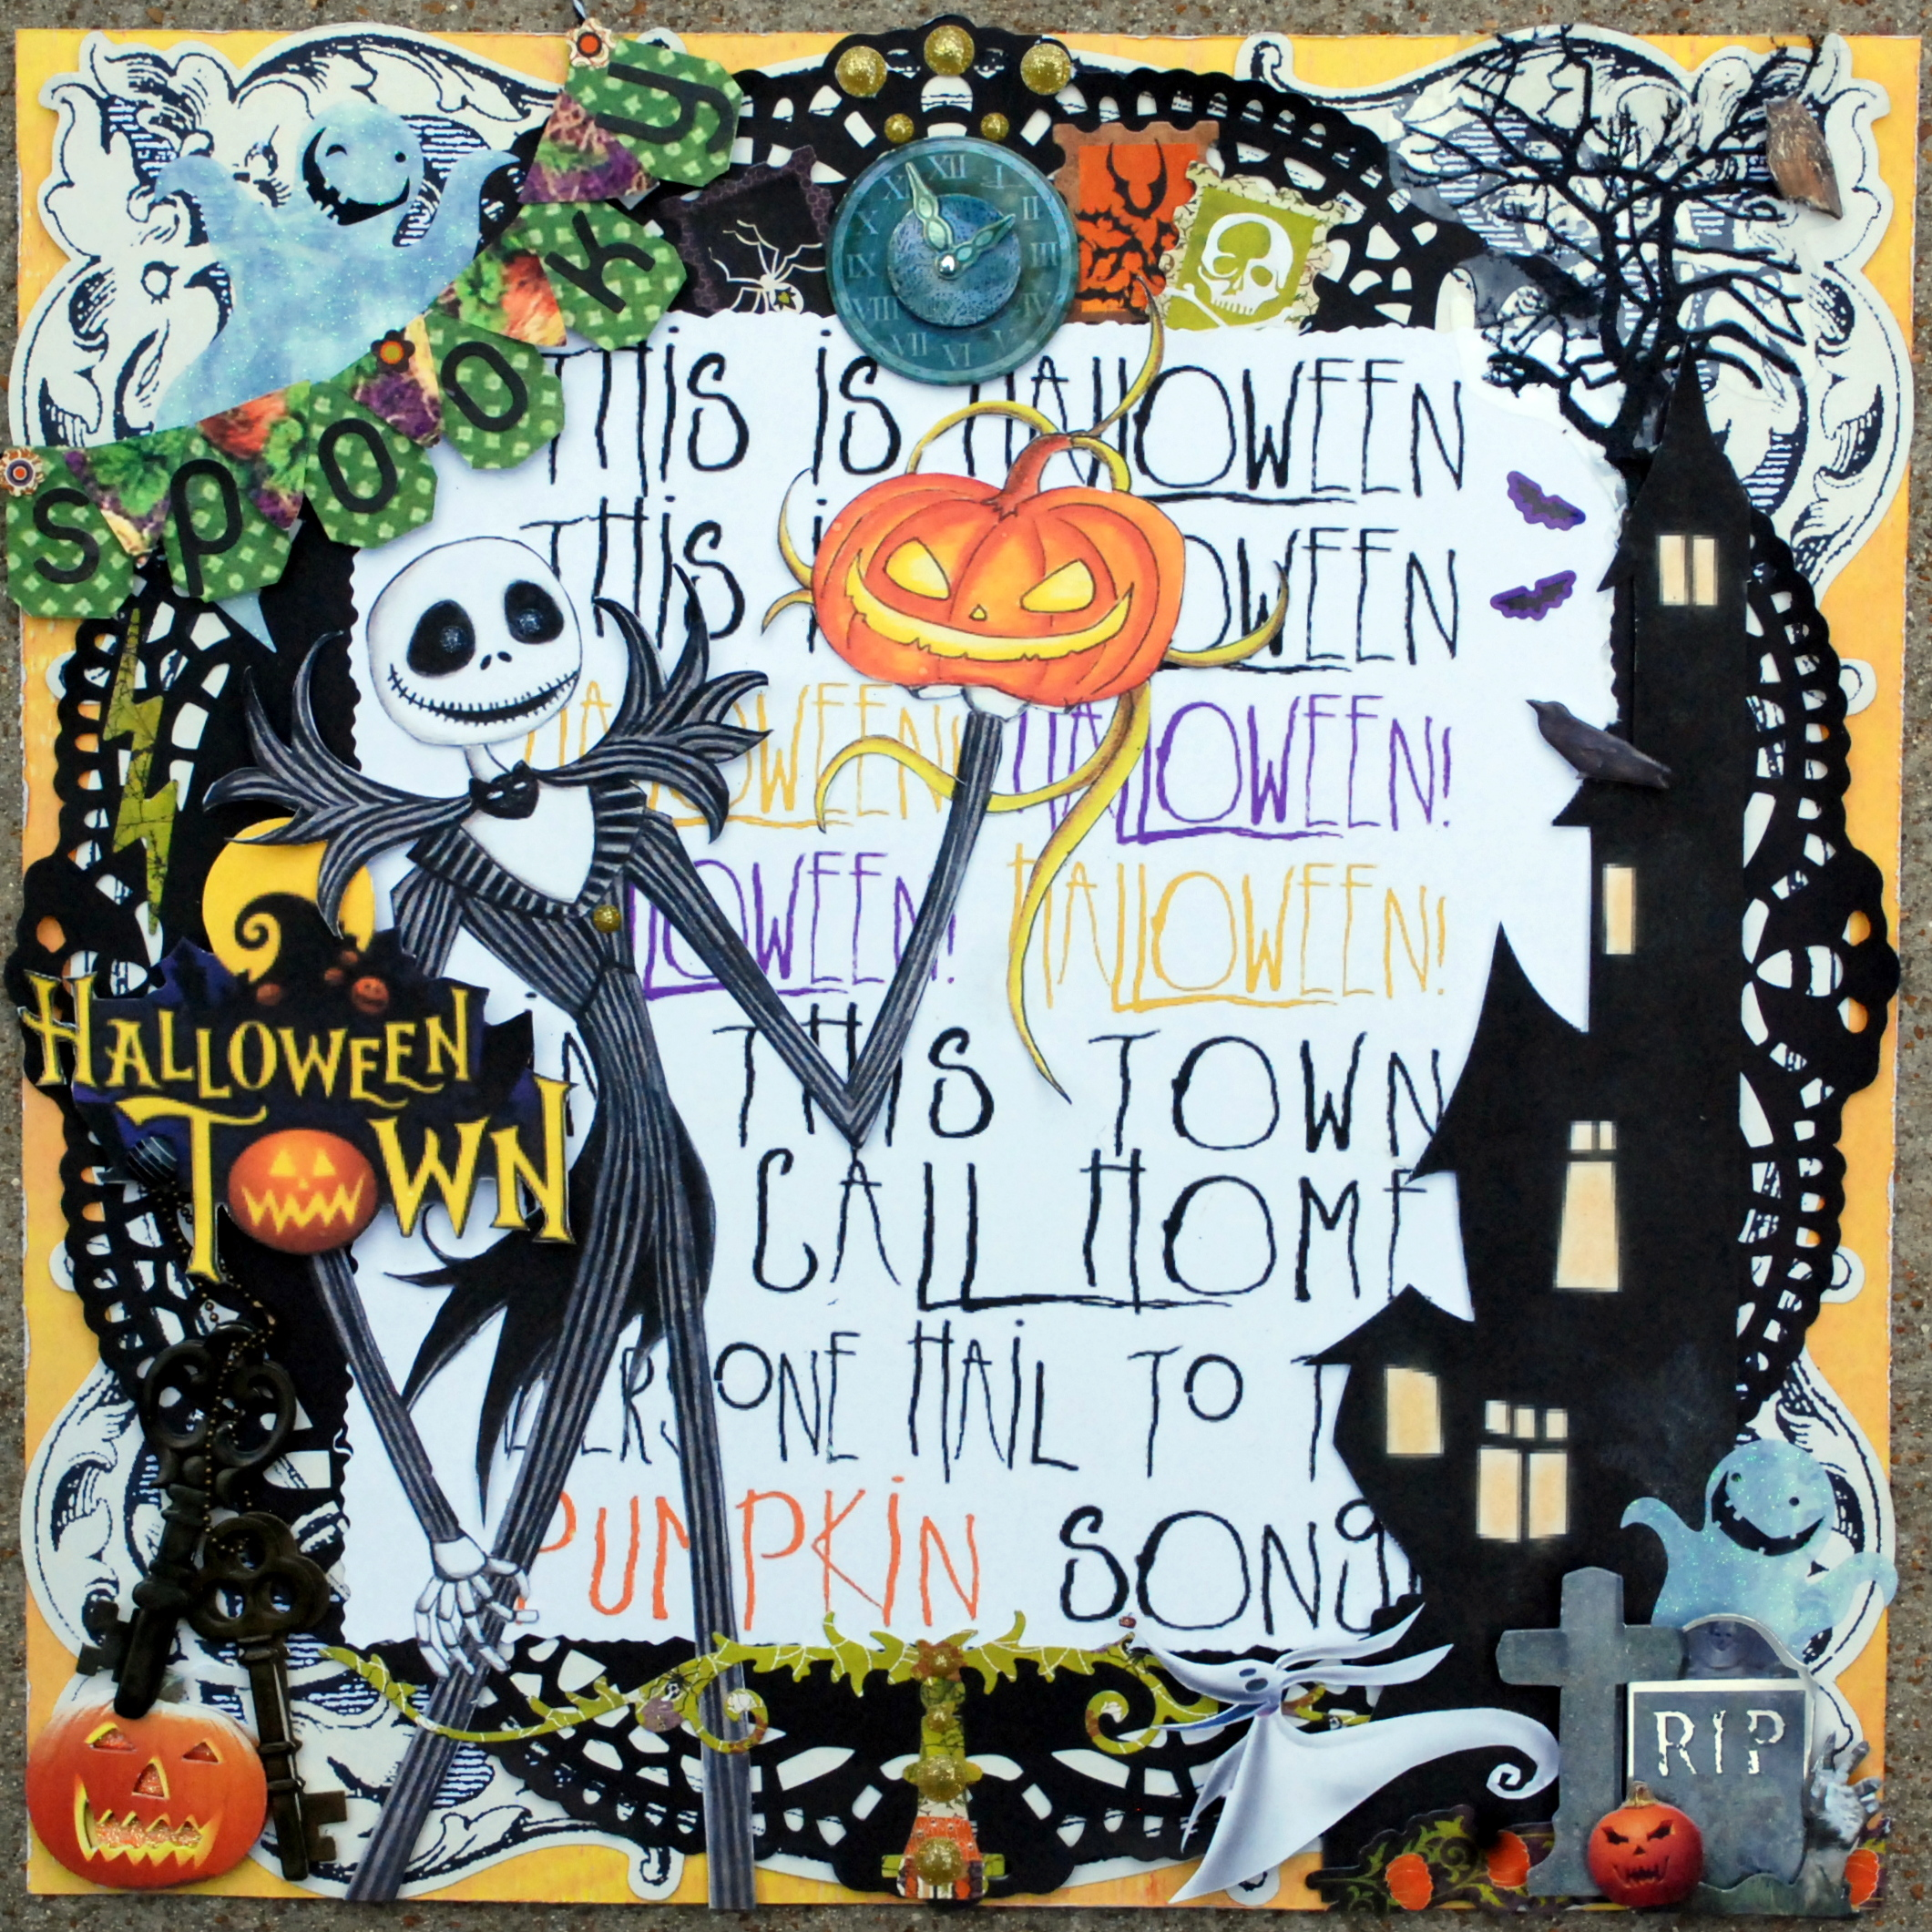 Nightmare Before Christmas Halloween Town Woframe